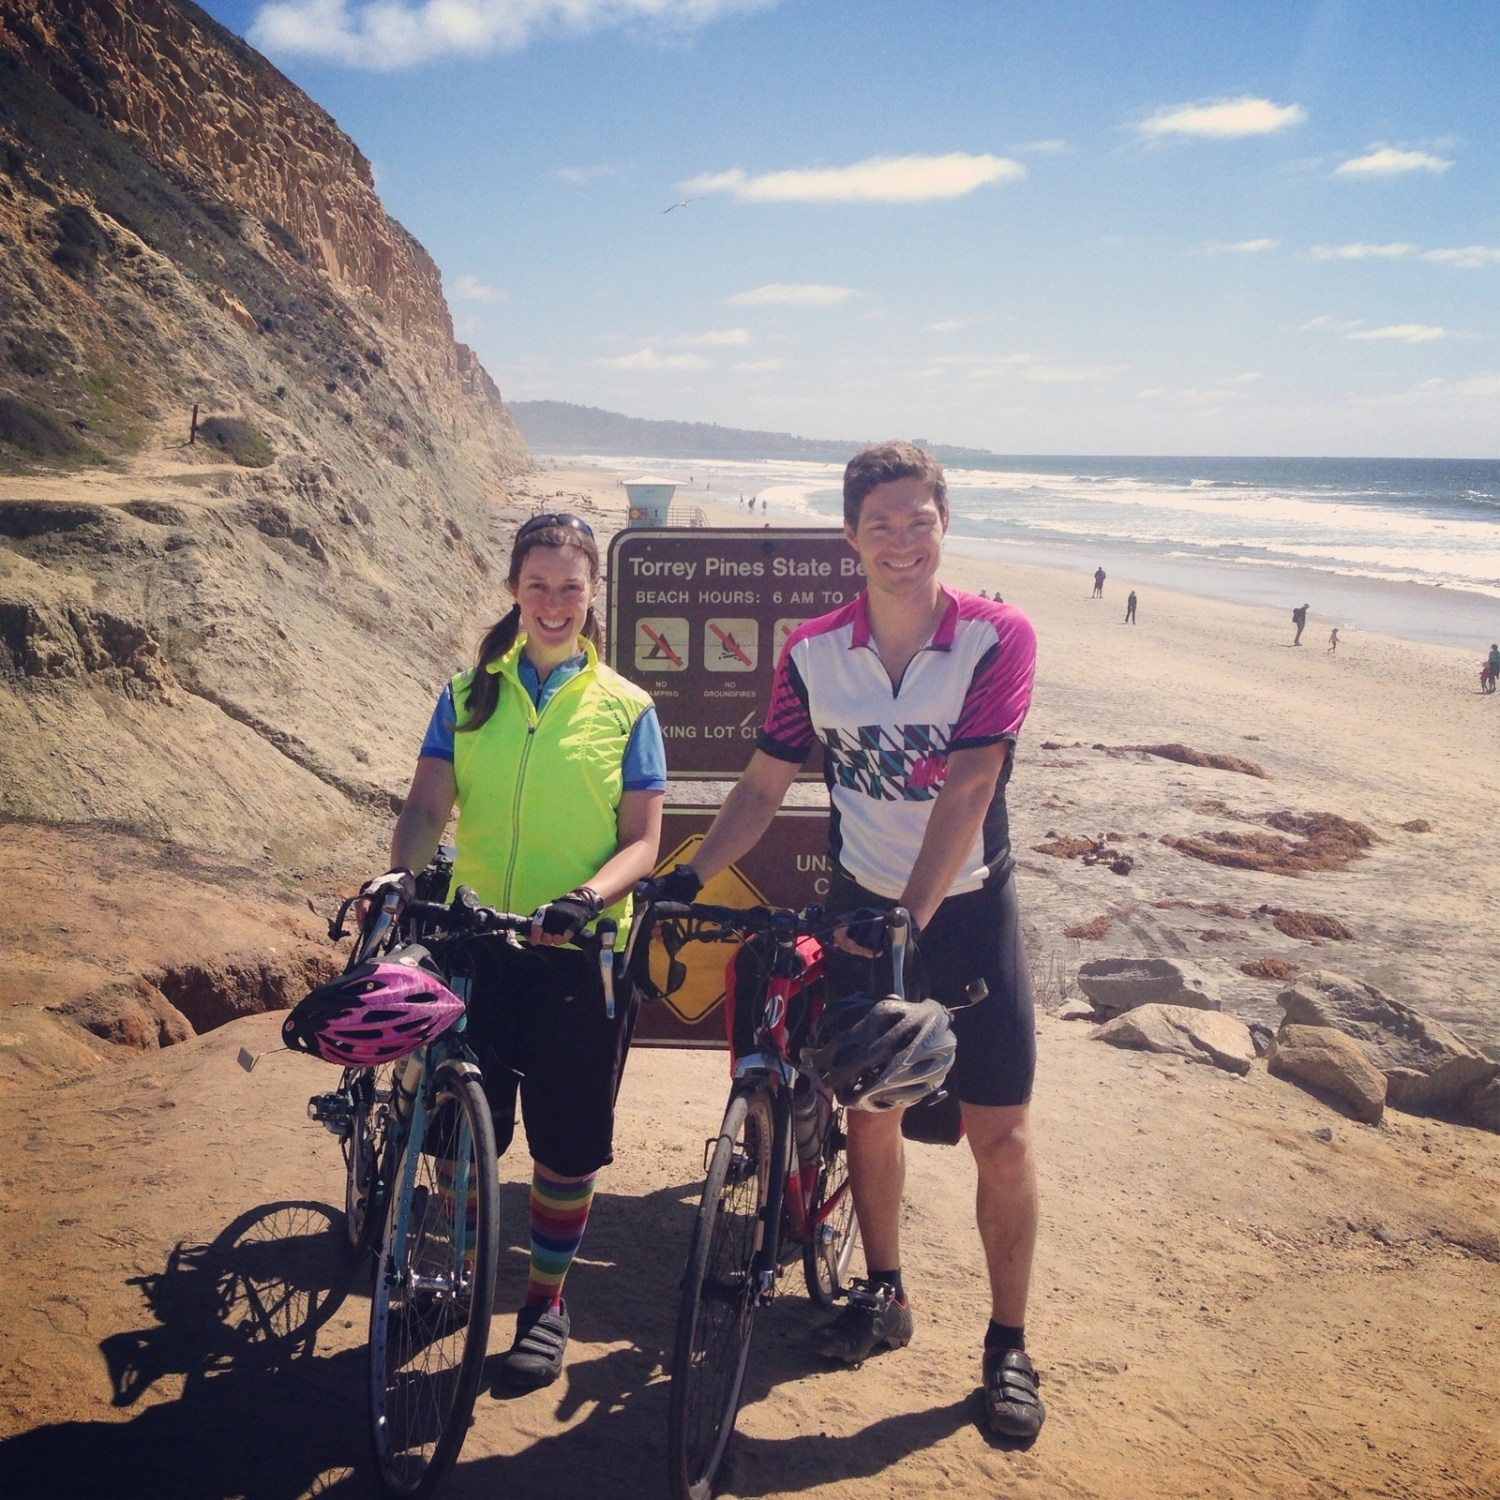 Checking the view at lovely Torrey Pines before a tough climb into San Diego.